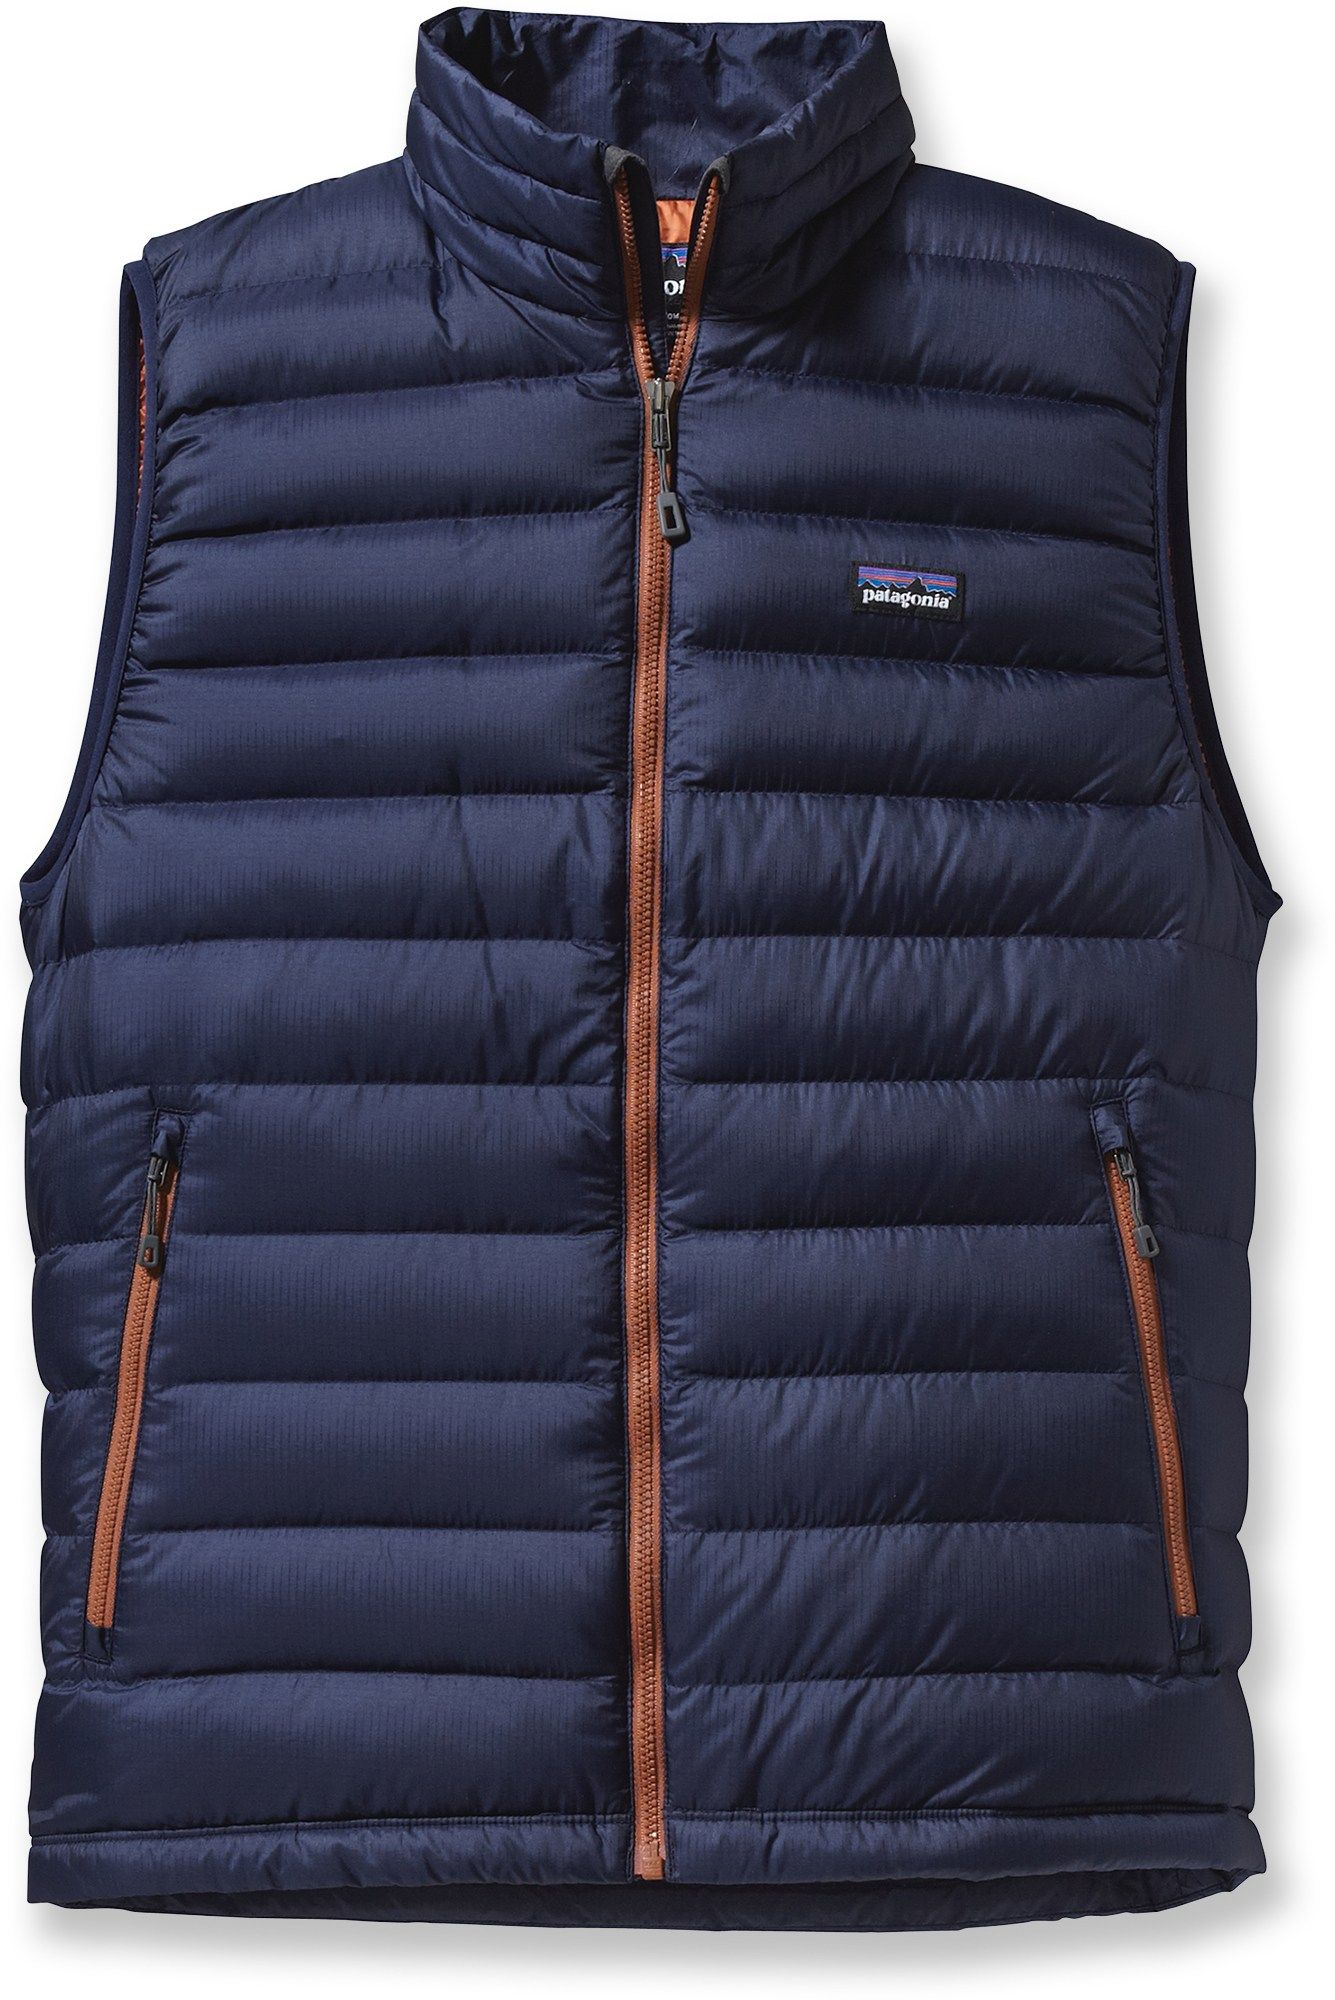 Patagonia Men's Down Sweater Vest Sprouted Green XXL | Patagonia ...